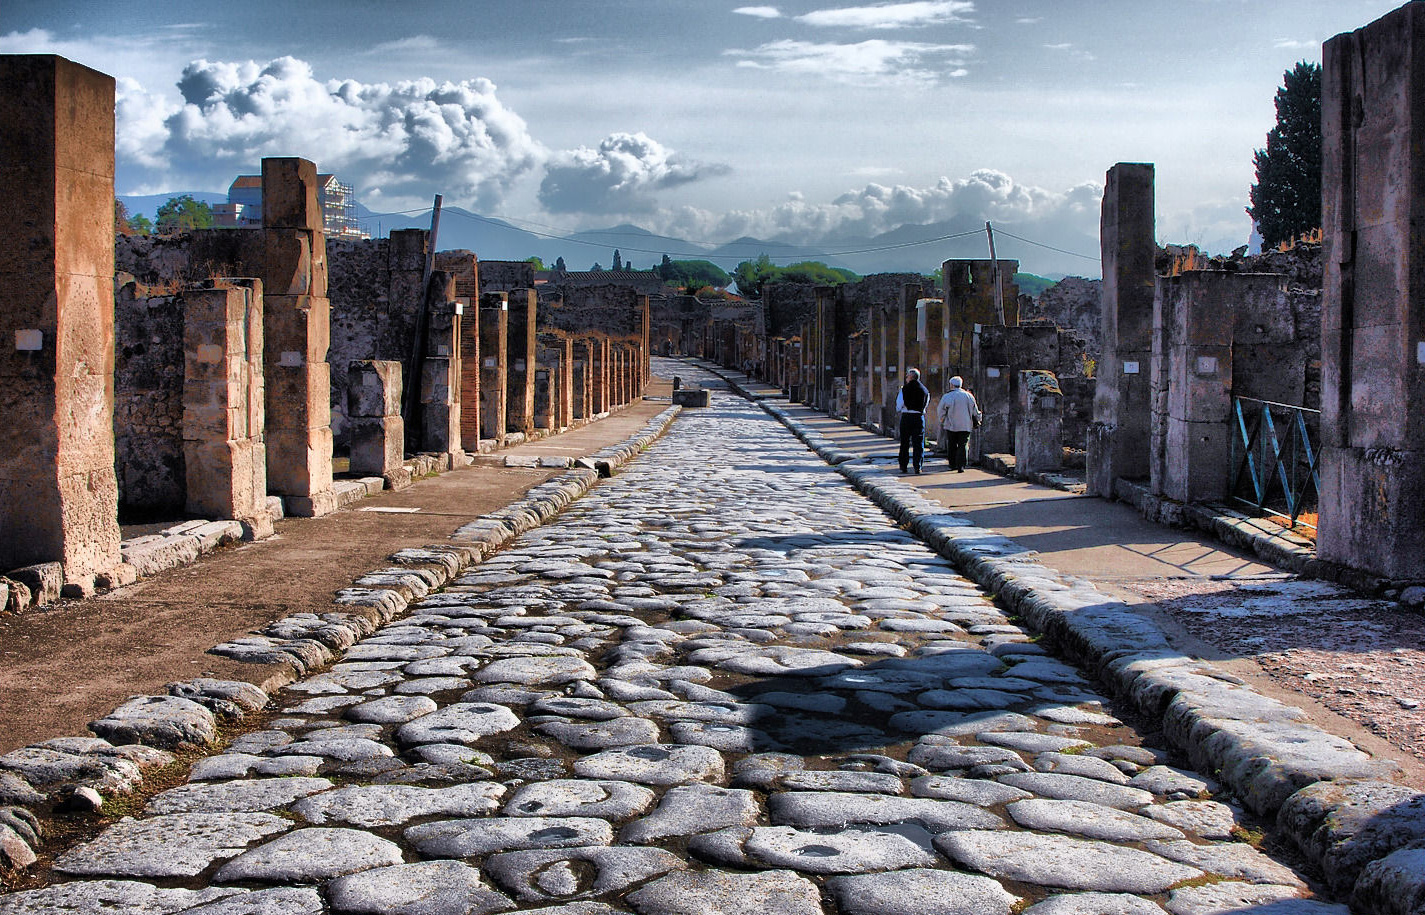 Amphitheatre Of Pompeii Wallpaper 20   1425 X 915 stmednet 1425x915